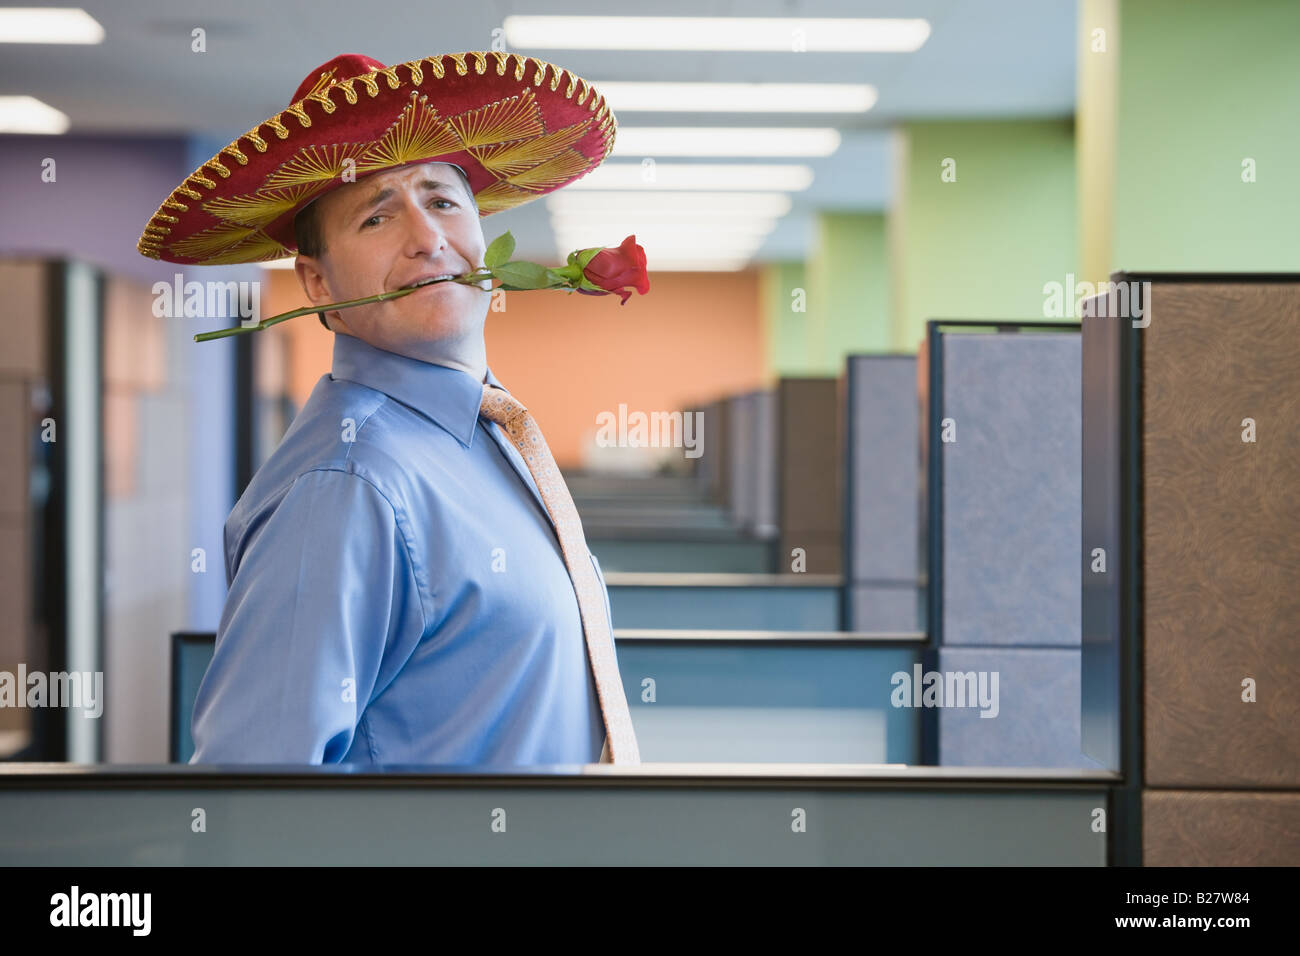 Businessman wearing sombrero and holding rose in teeth - Stock Image